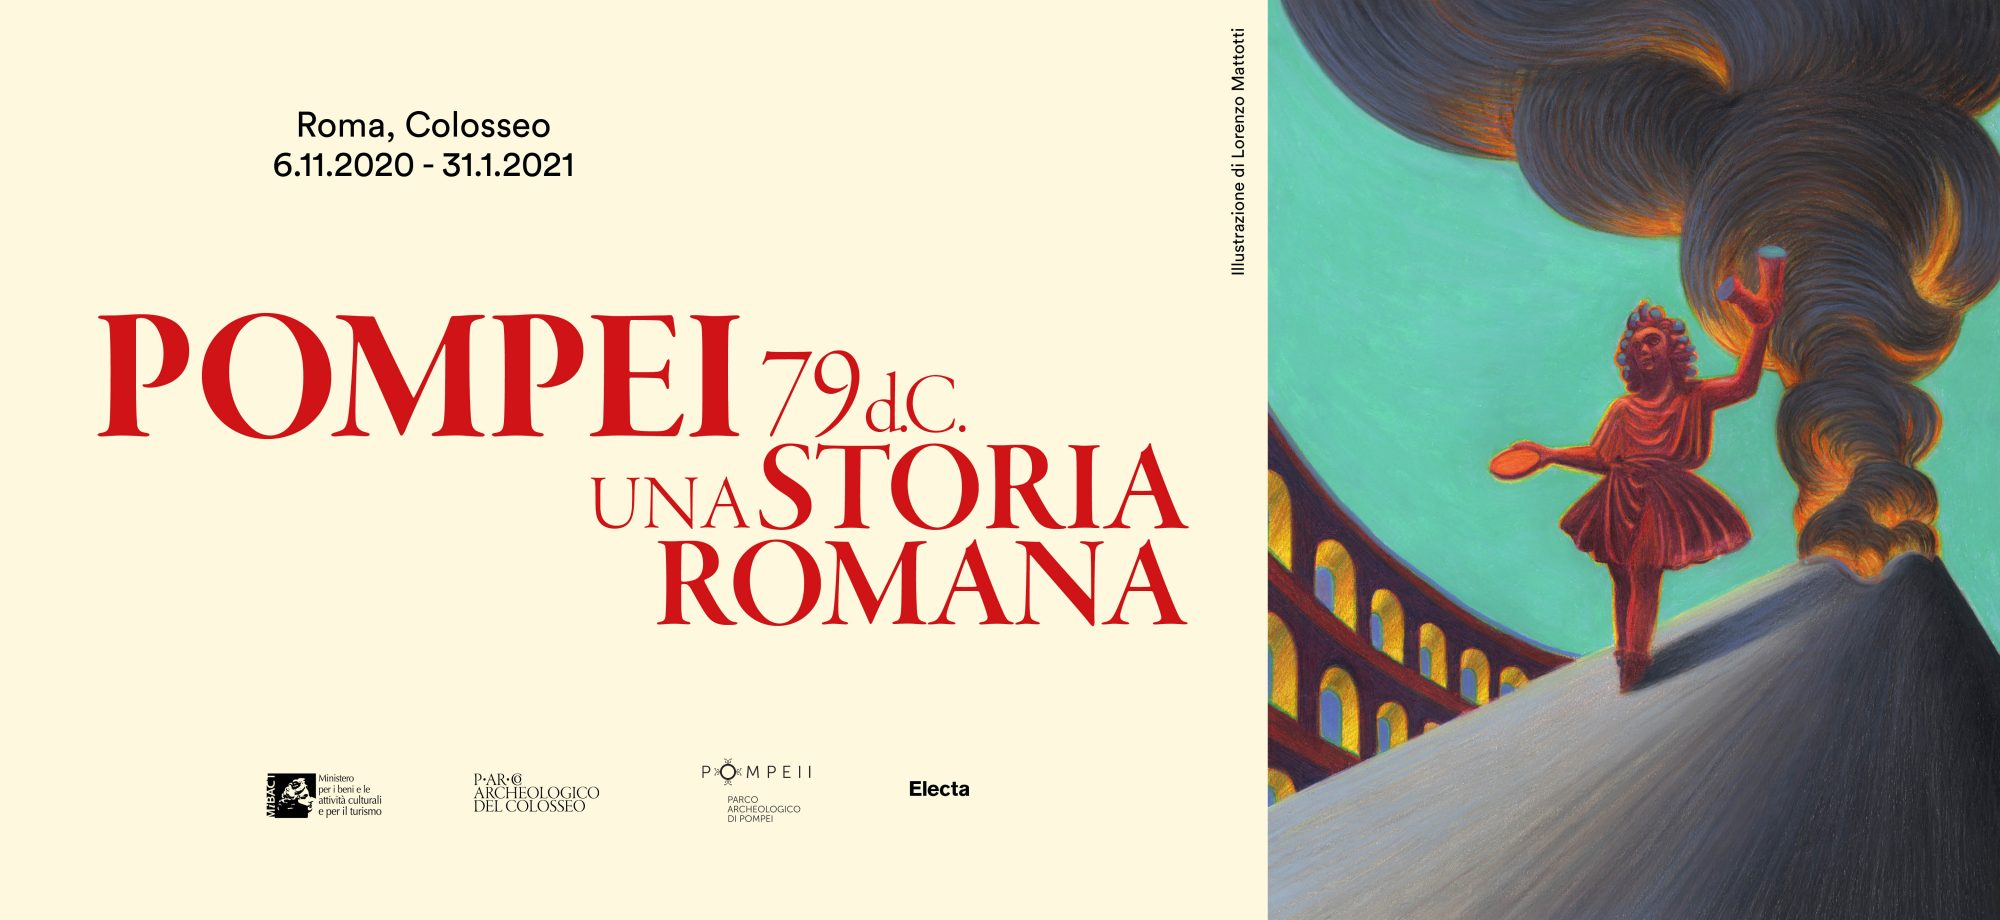 "Exhibition ""Pompei 79 d.C. Una storia romana"" at the Colosseum until 31 January 2021"